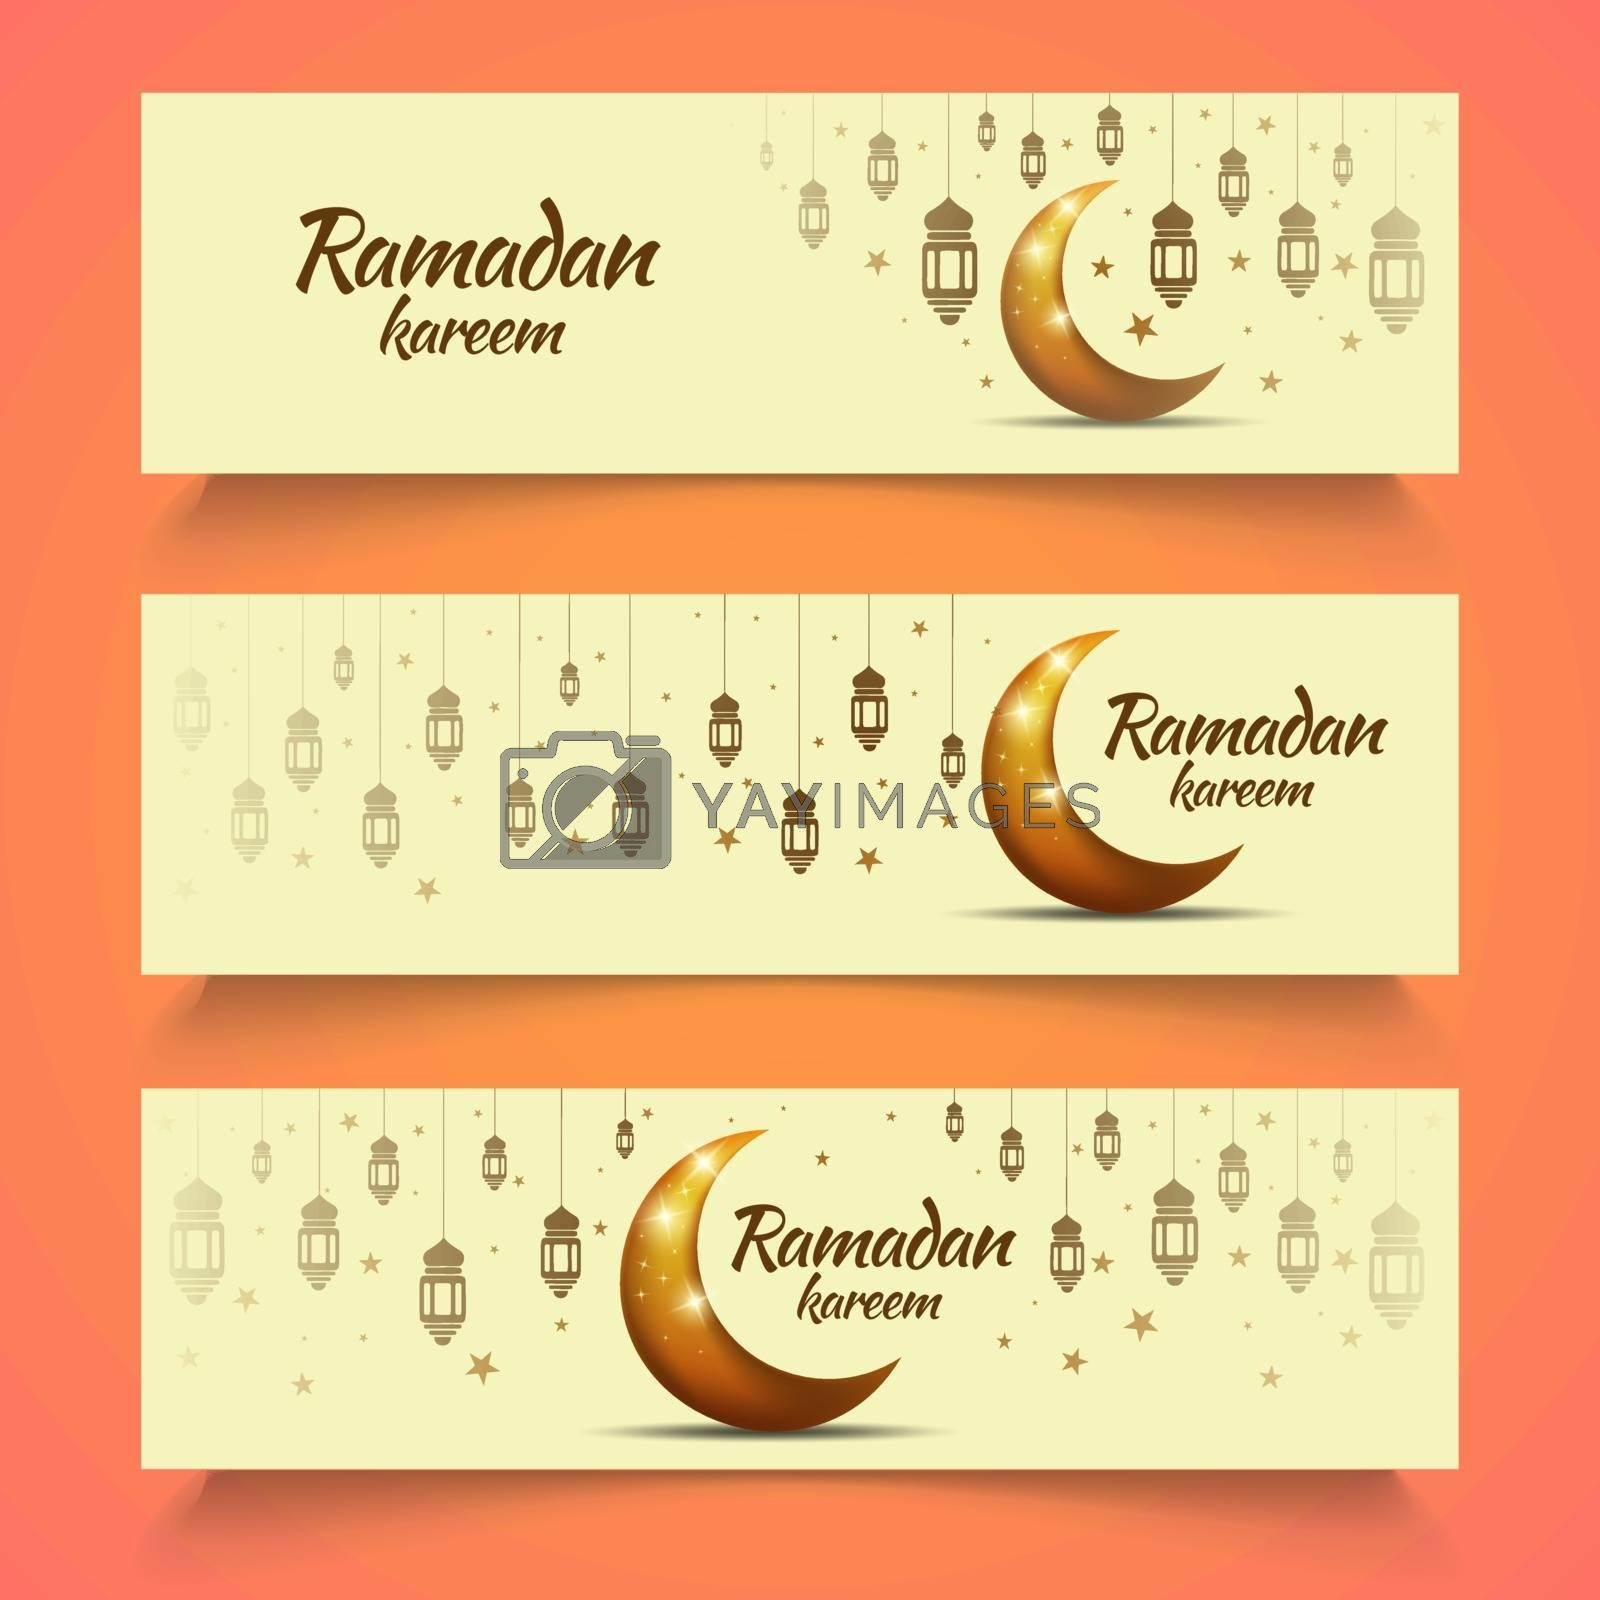 3 Set of Banners for Ramadan Preparation with a Shining Moon Design, lanterns and stars.